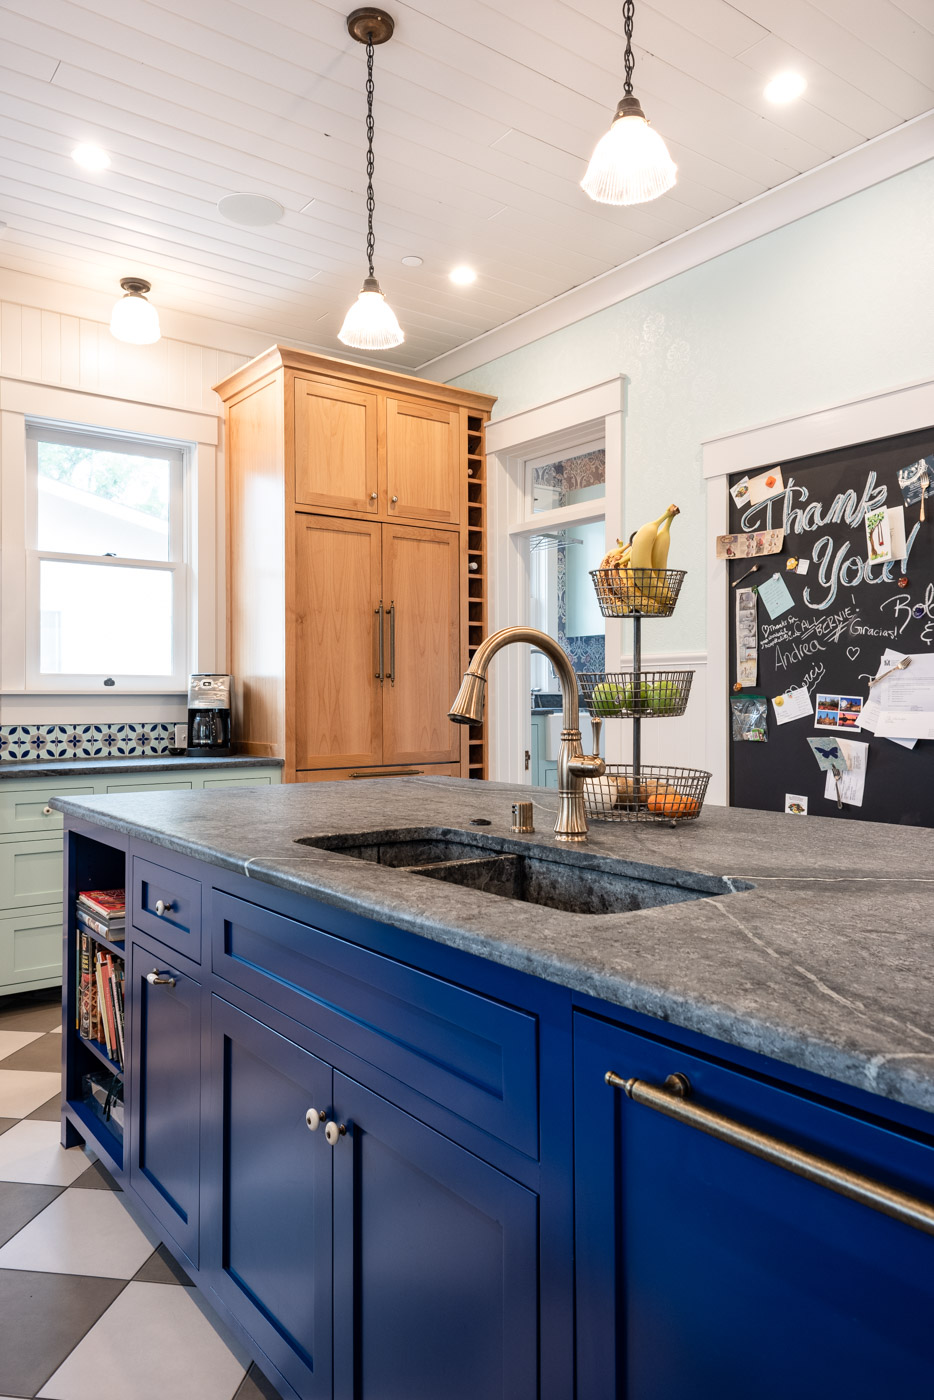 Eclectic Country Craftsman kitchen with custom blue painted cabinets and kitchen island sink